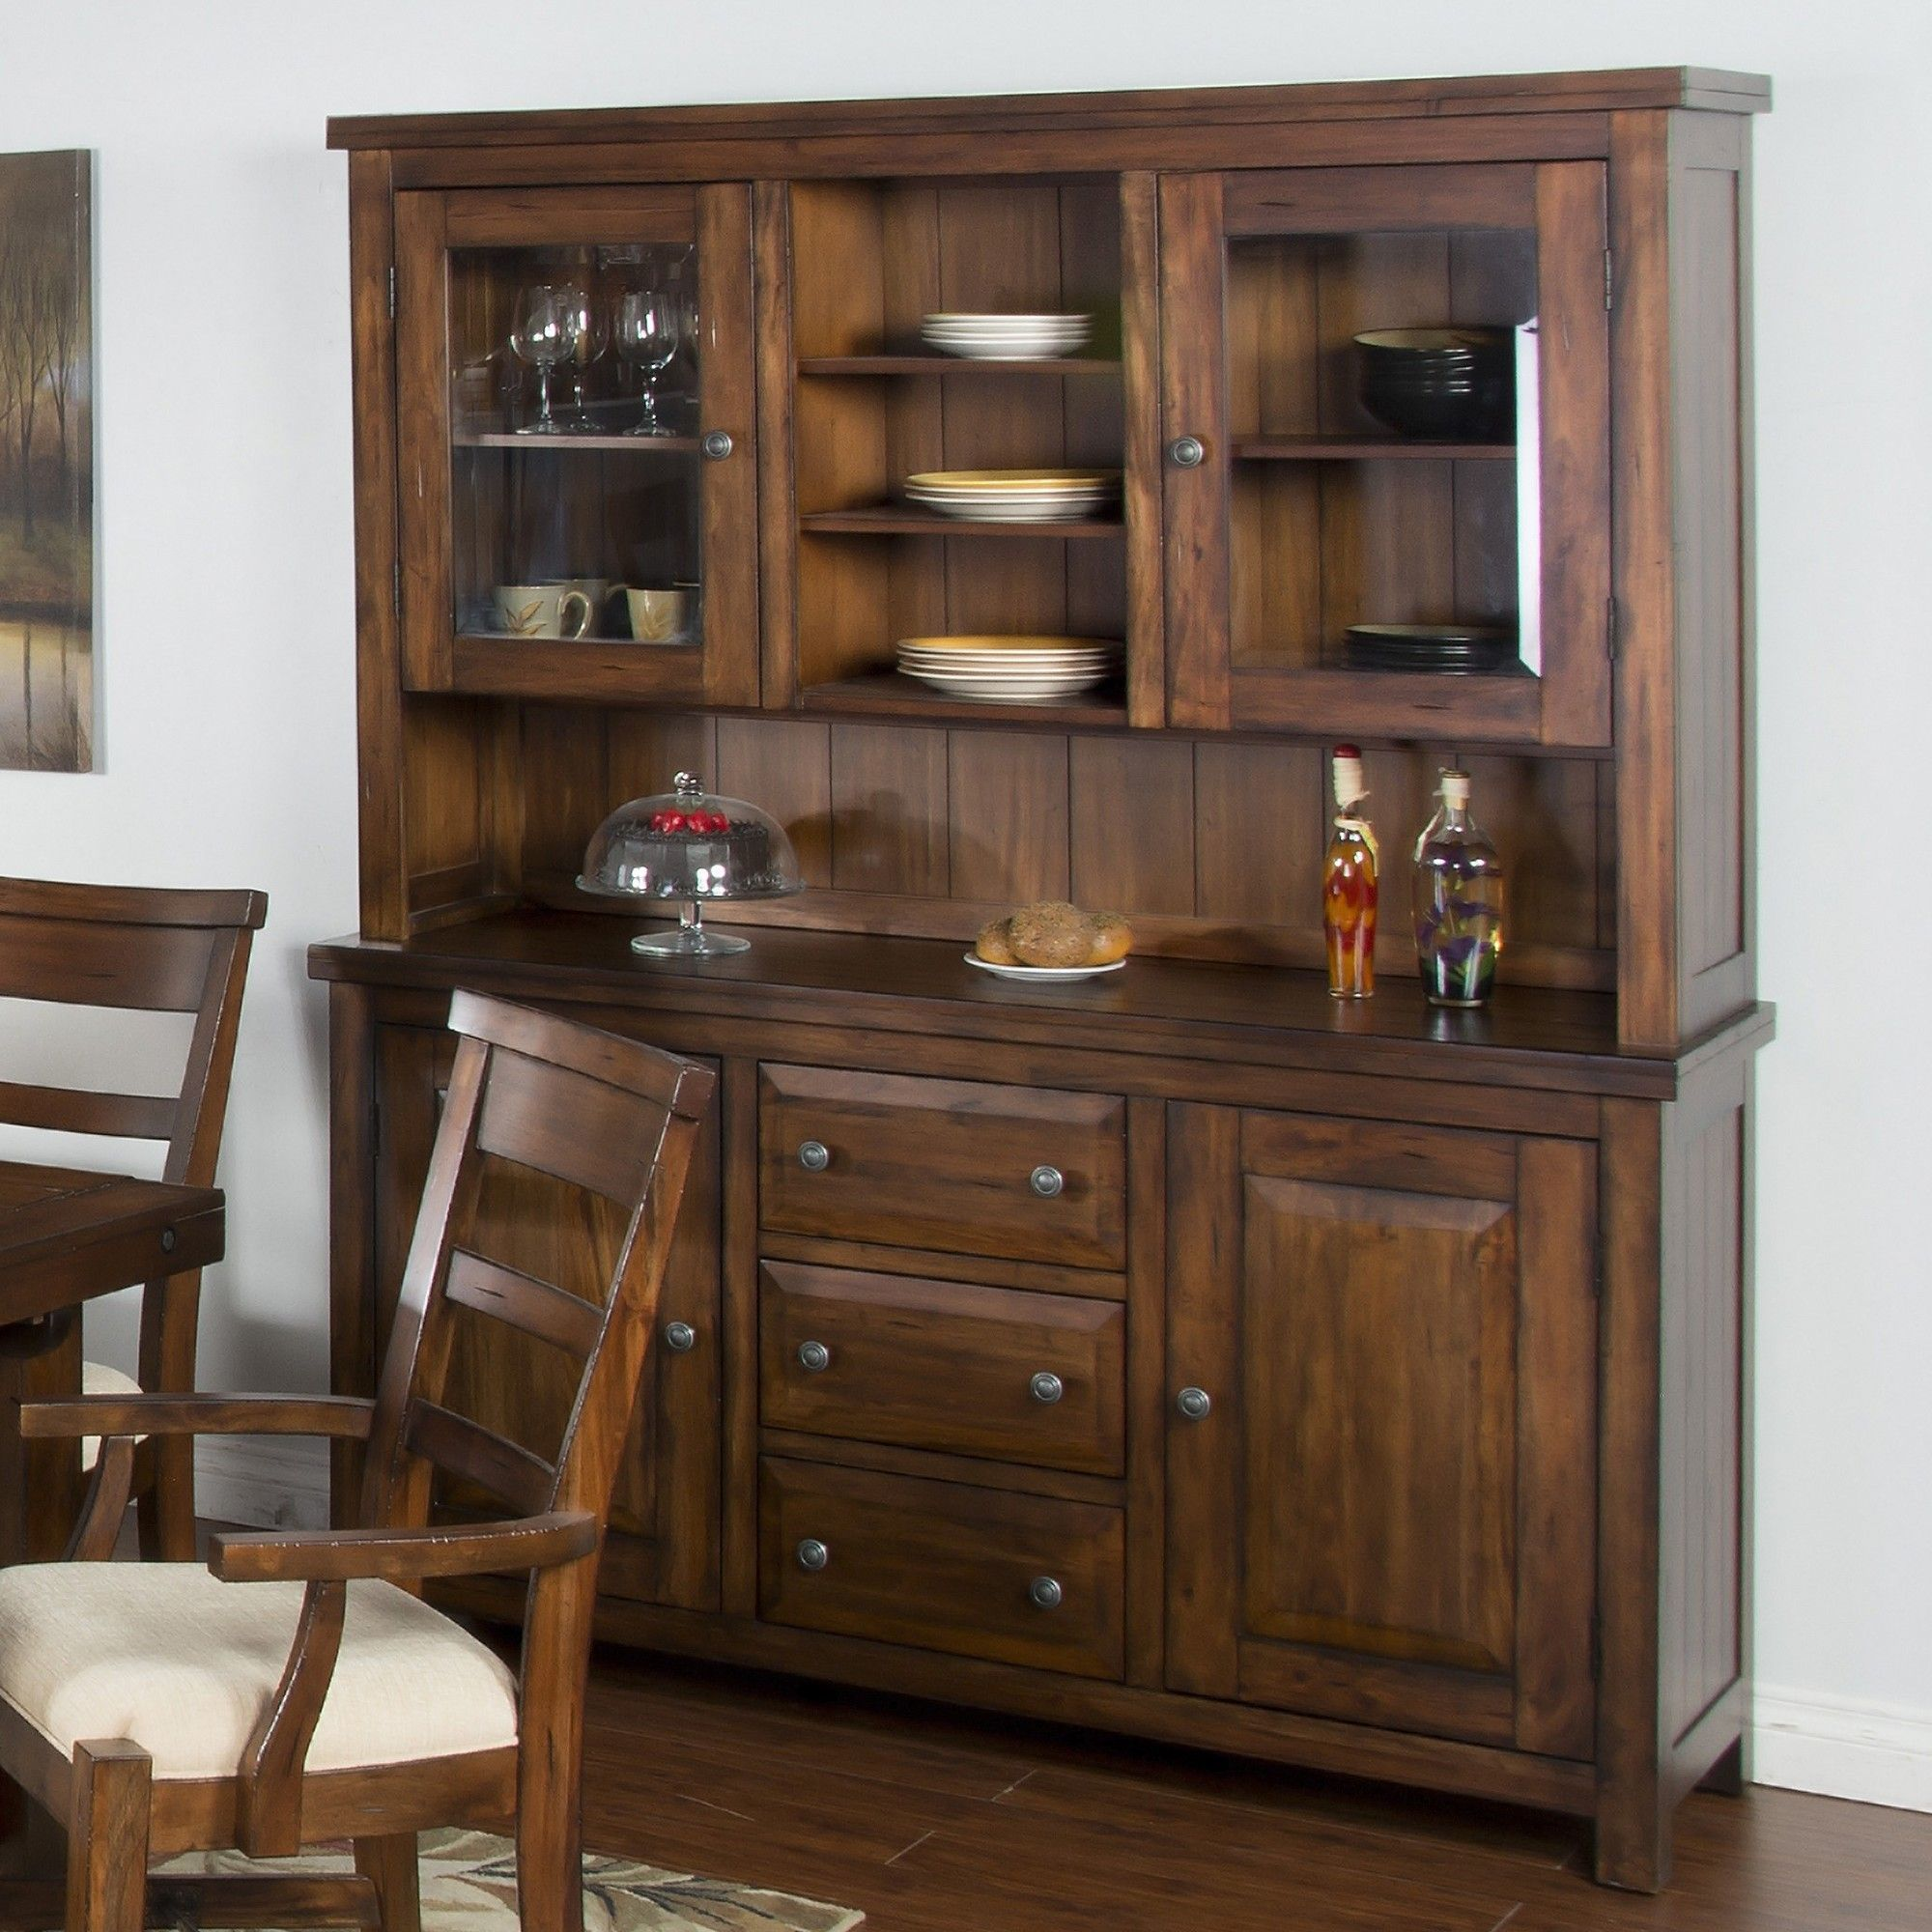 kitchen woodworking hardware cabinet china designs free plans corner hutch ikea